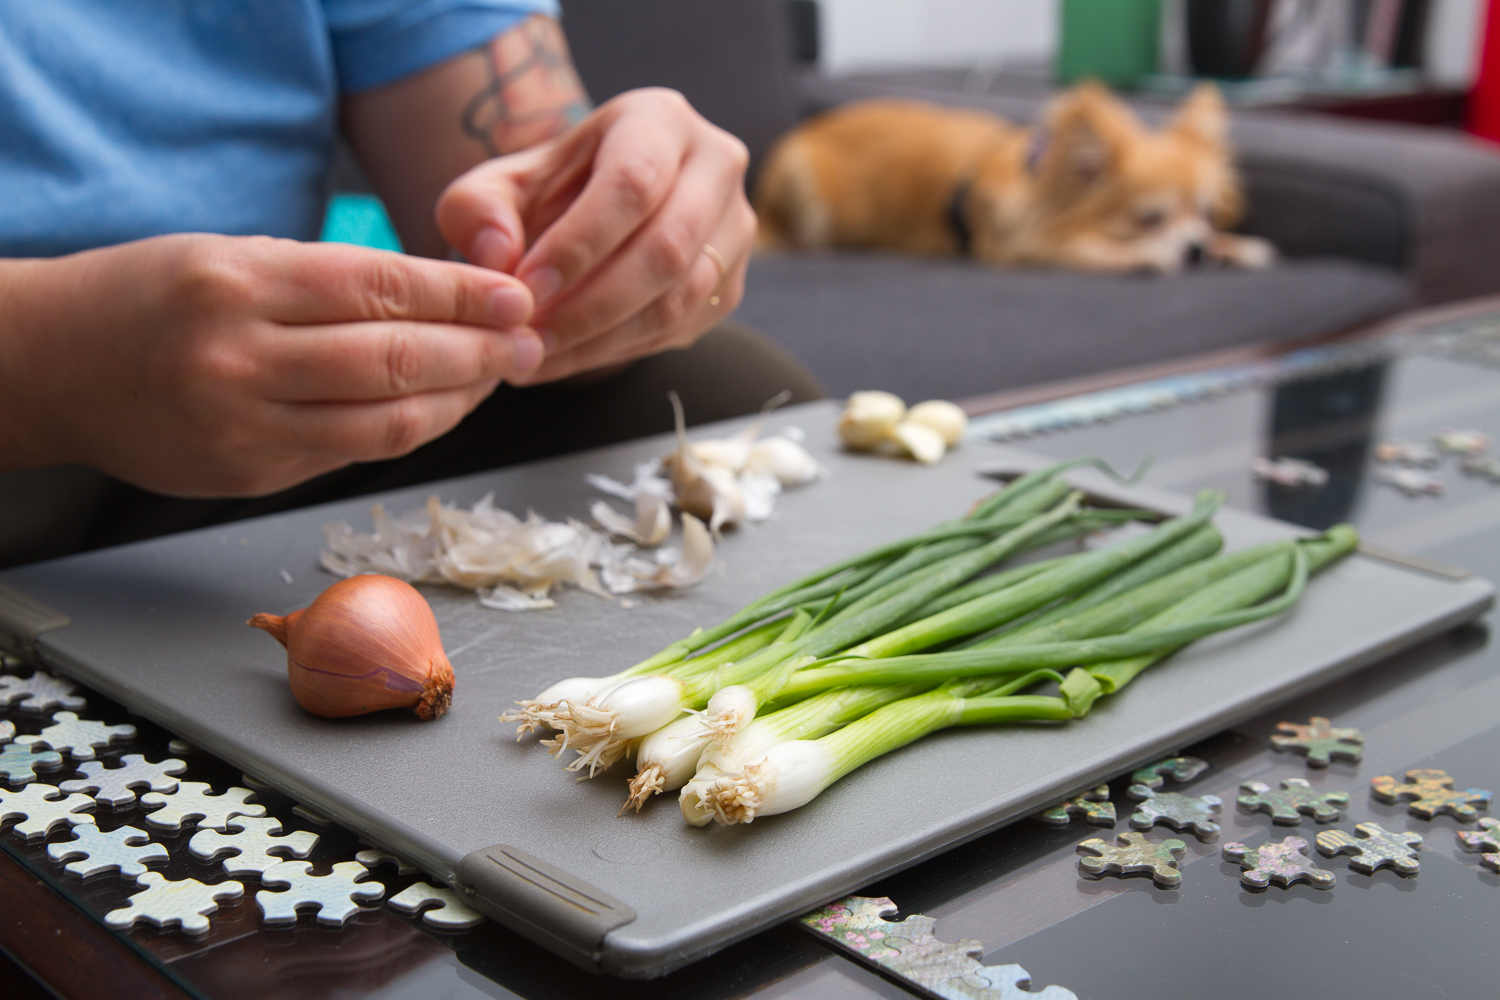 I love this image of my amazing multitasking wife prepping delish food atop her puzzle while watching the Olympics and being supervised by our grumpy chihuahua.